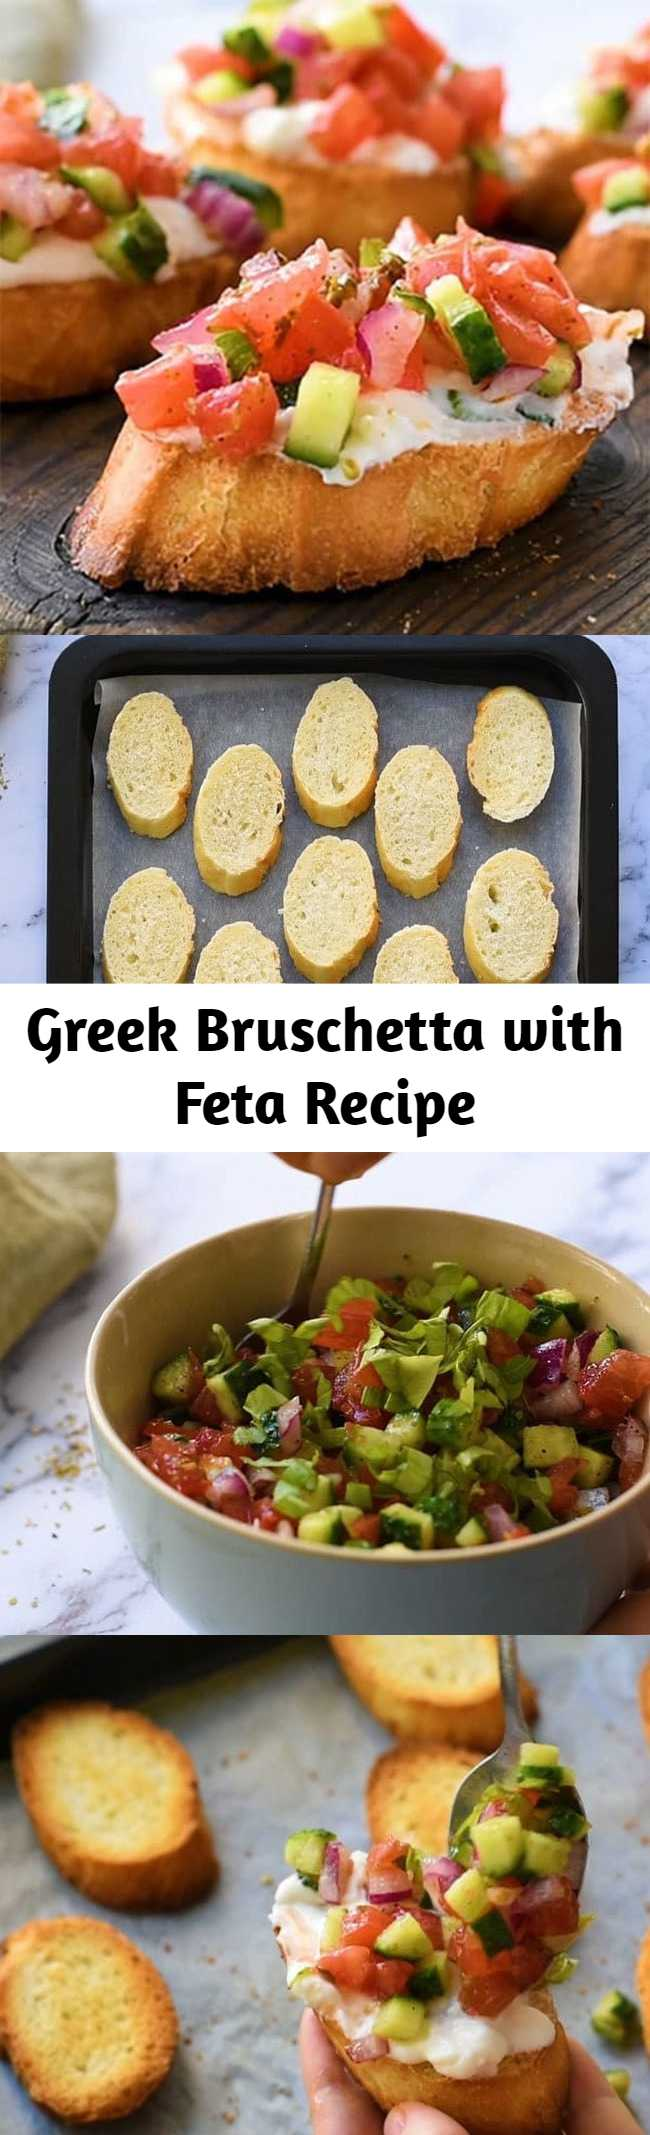 Greek Bruschetta with Feta - This appetizer recipe is loaded with flavor. Toasted bread - crostini- coated in a creamy feta spread and topped with tomato, cucumber, and red onion seasoned with Greek Vinaigrette. #bruschetta #greekbruschetta #appetizer #greekrecipe